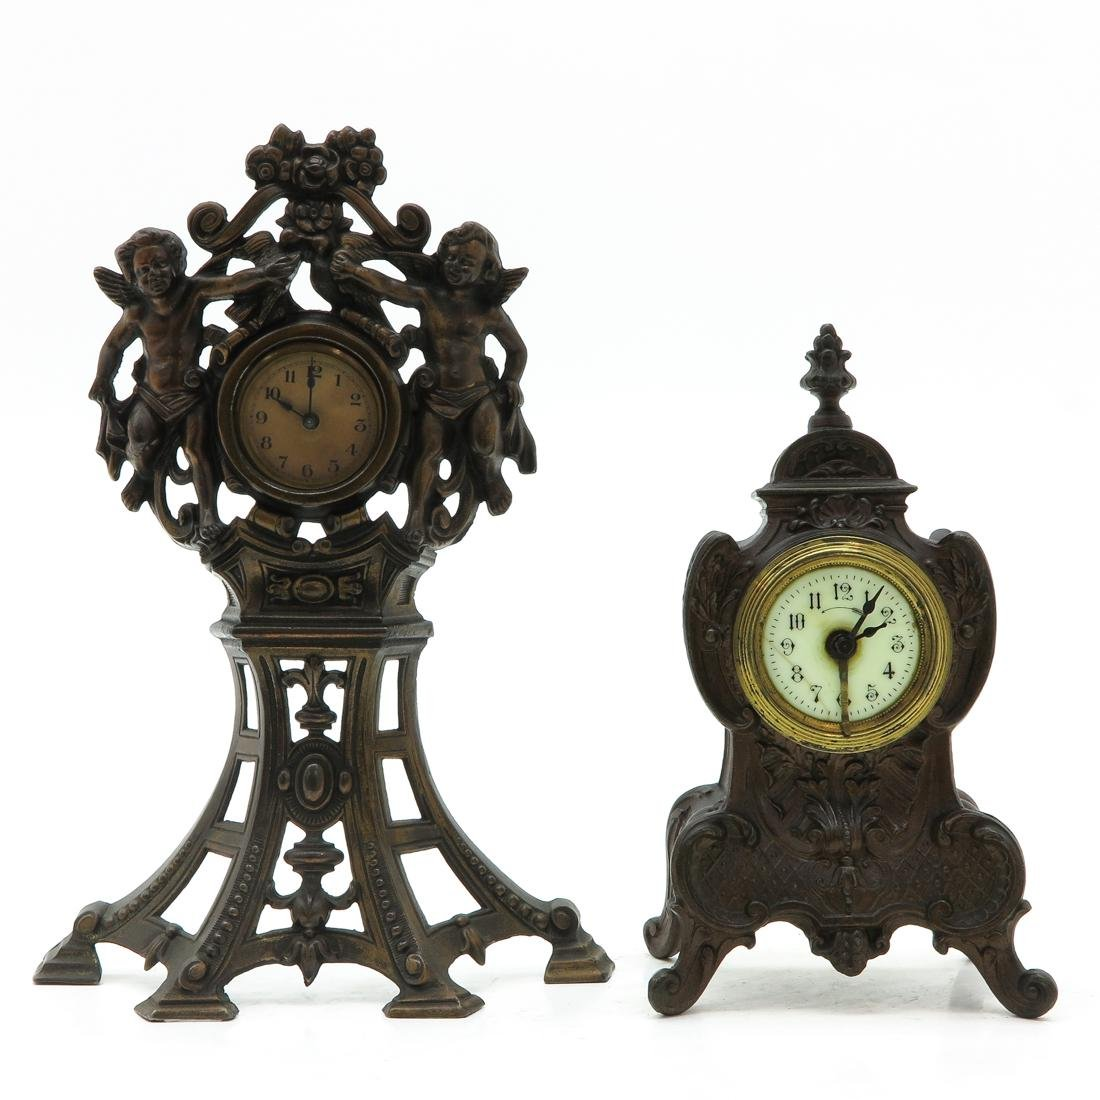 Lot of 2 Mantel Clocks